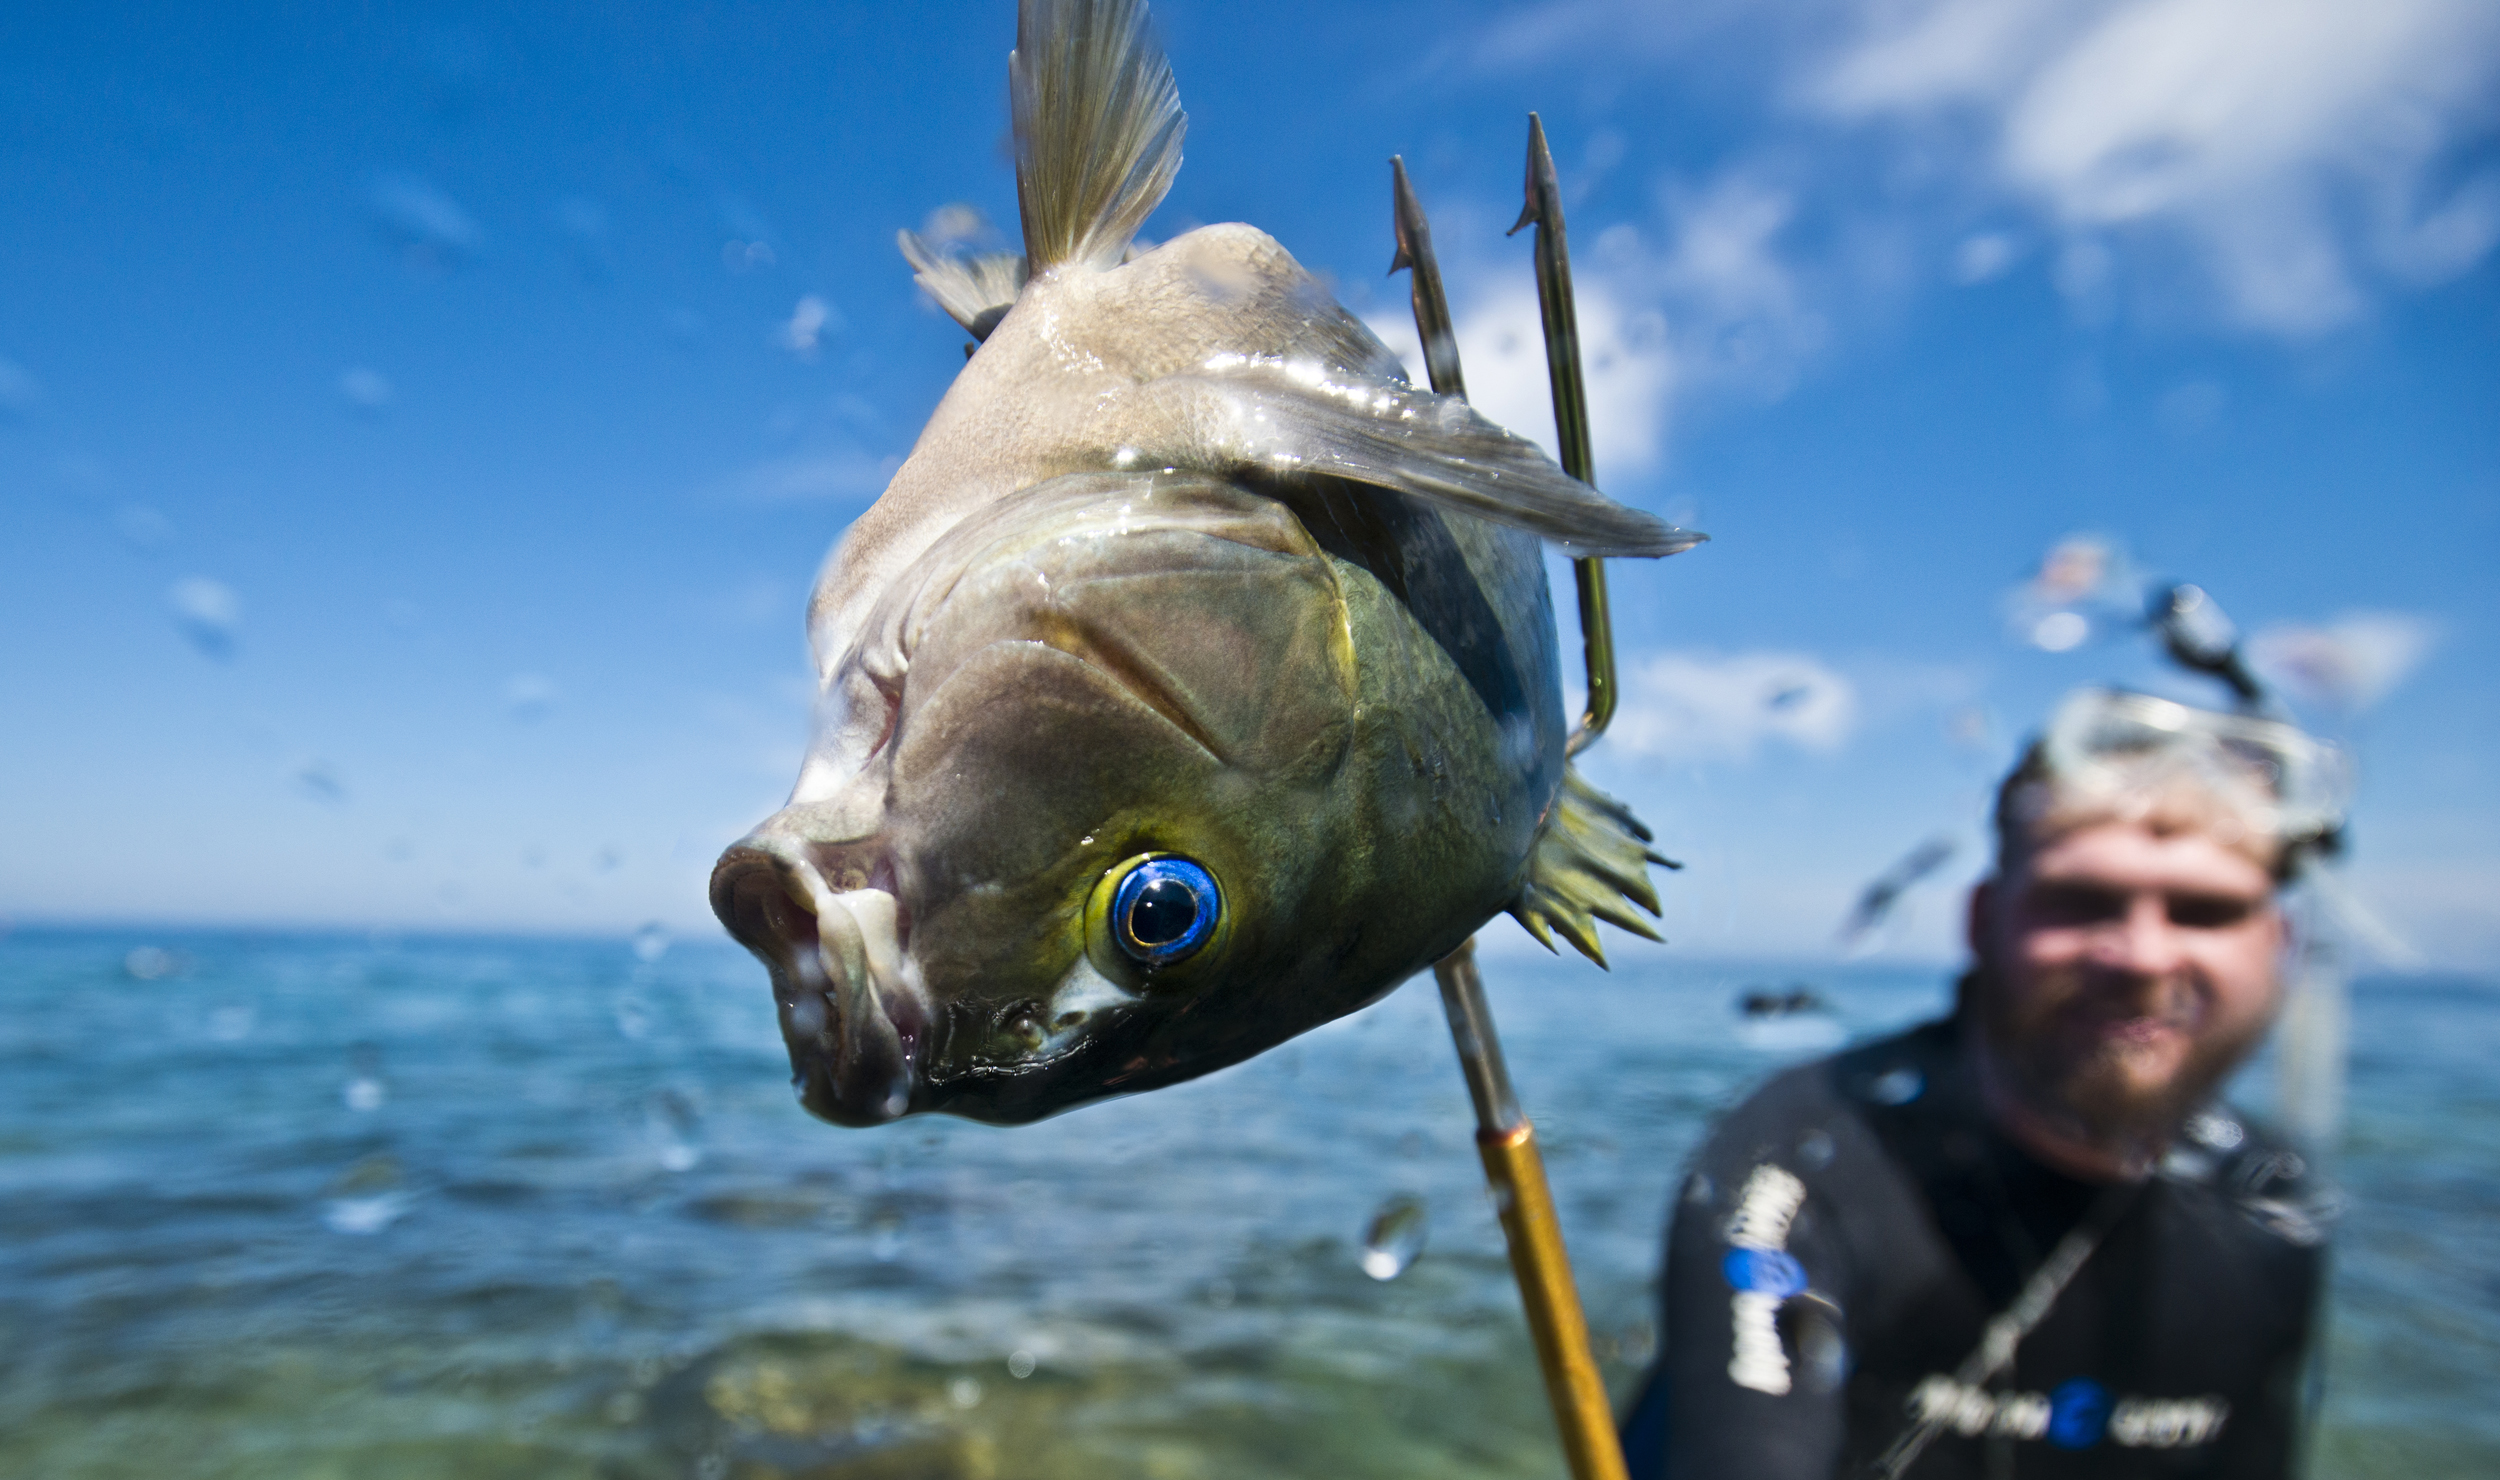 Spearfishing-6587.jpg